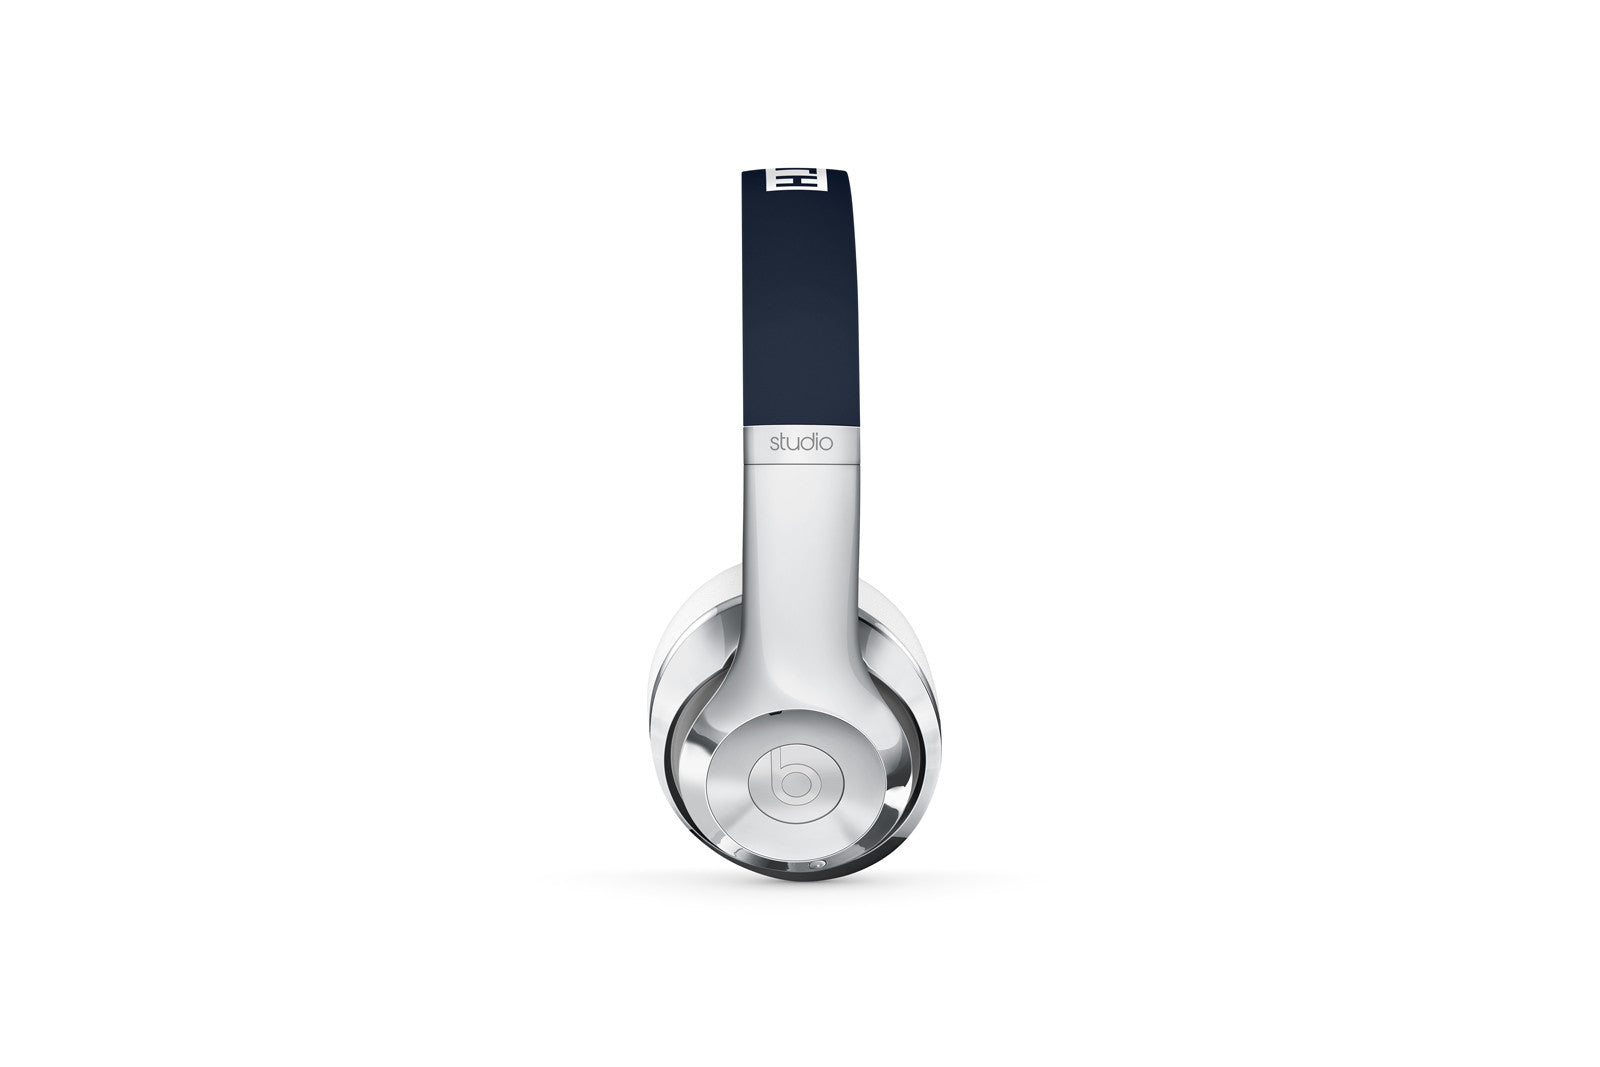 Kith x Beats by Dre Studio Wireless Headphones